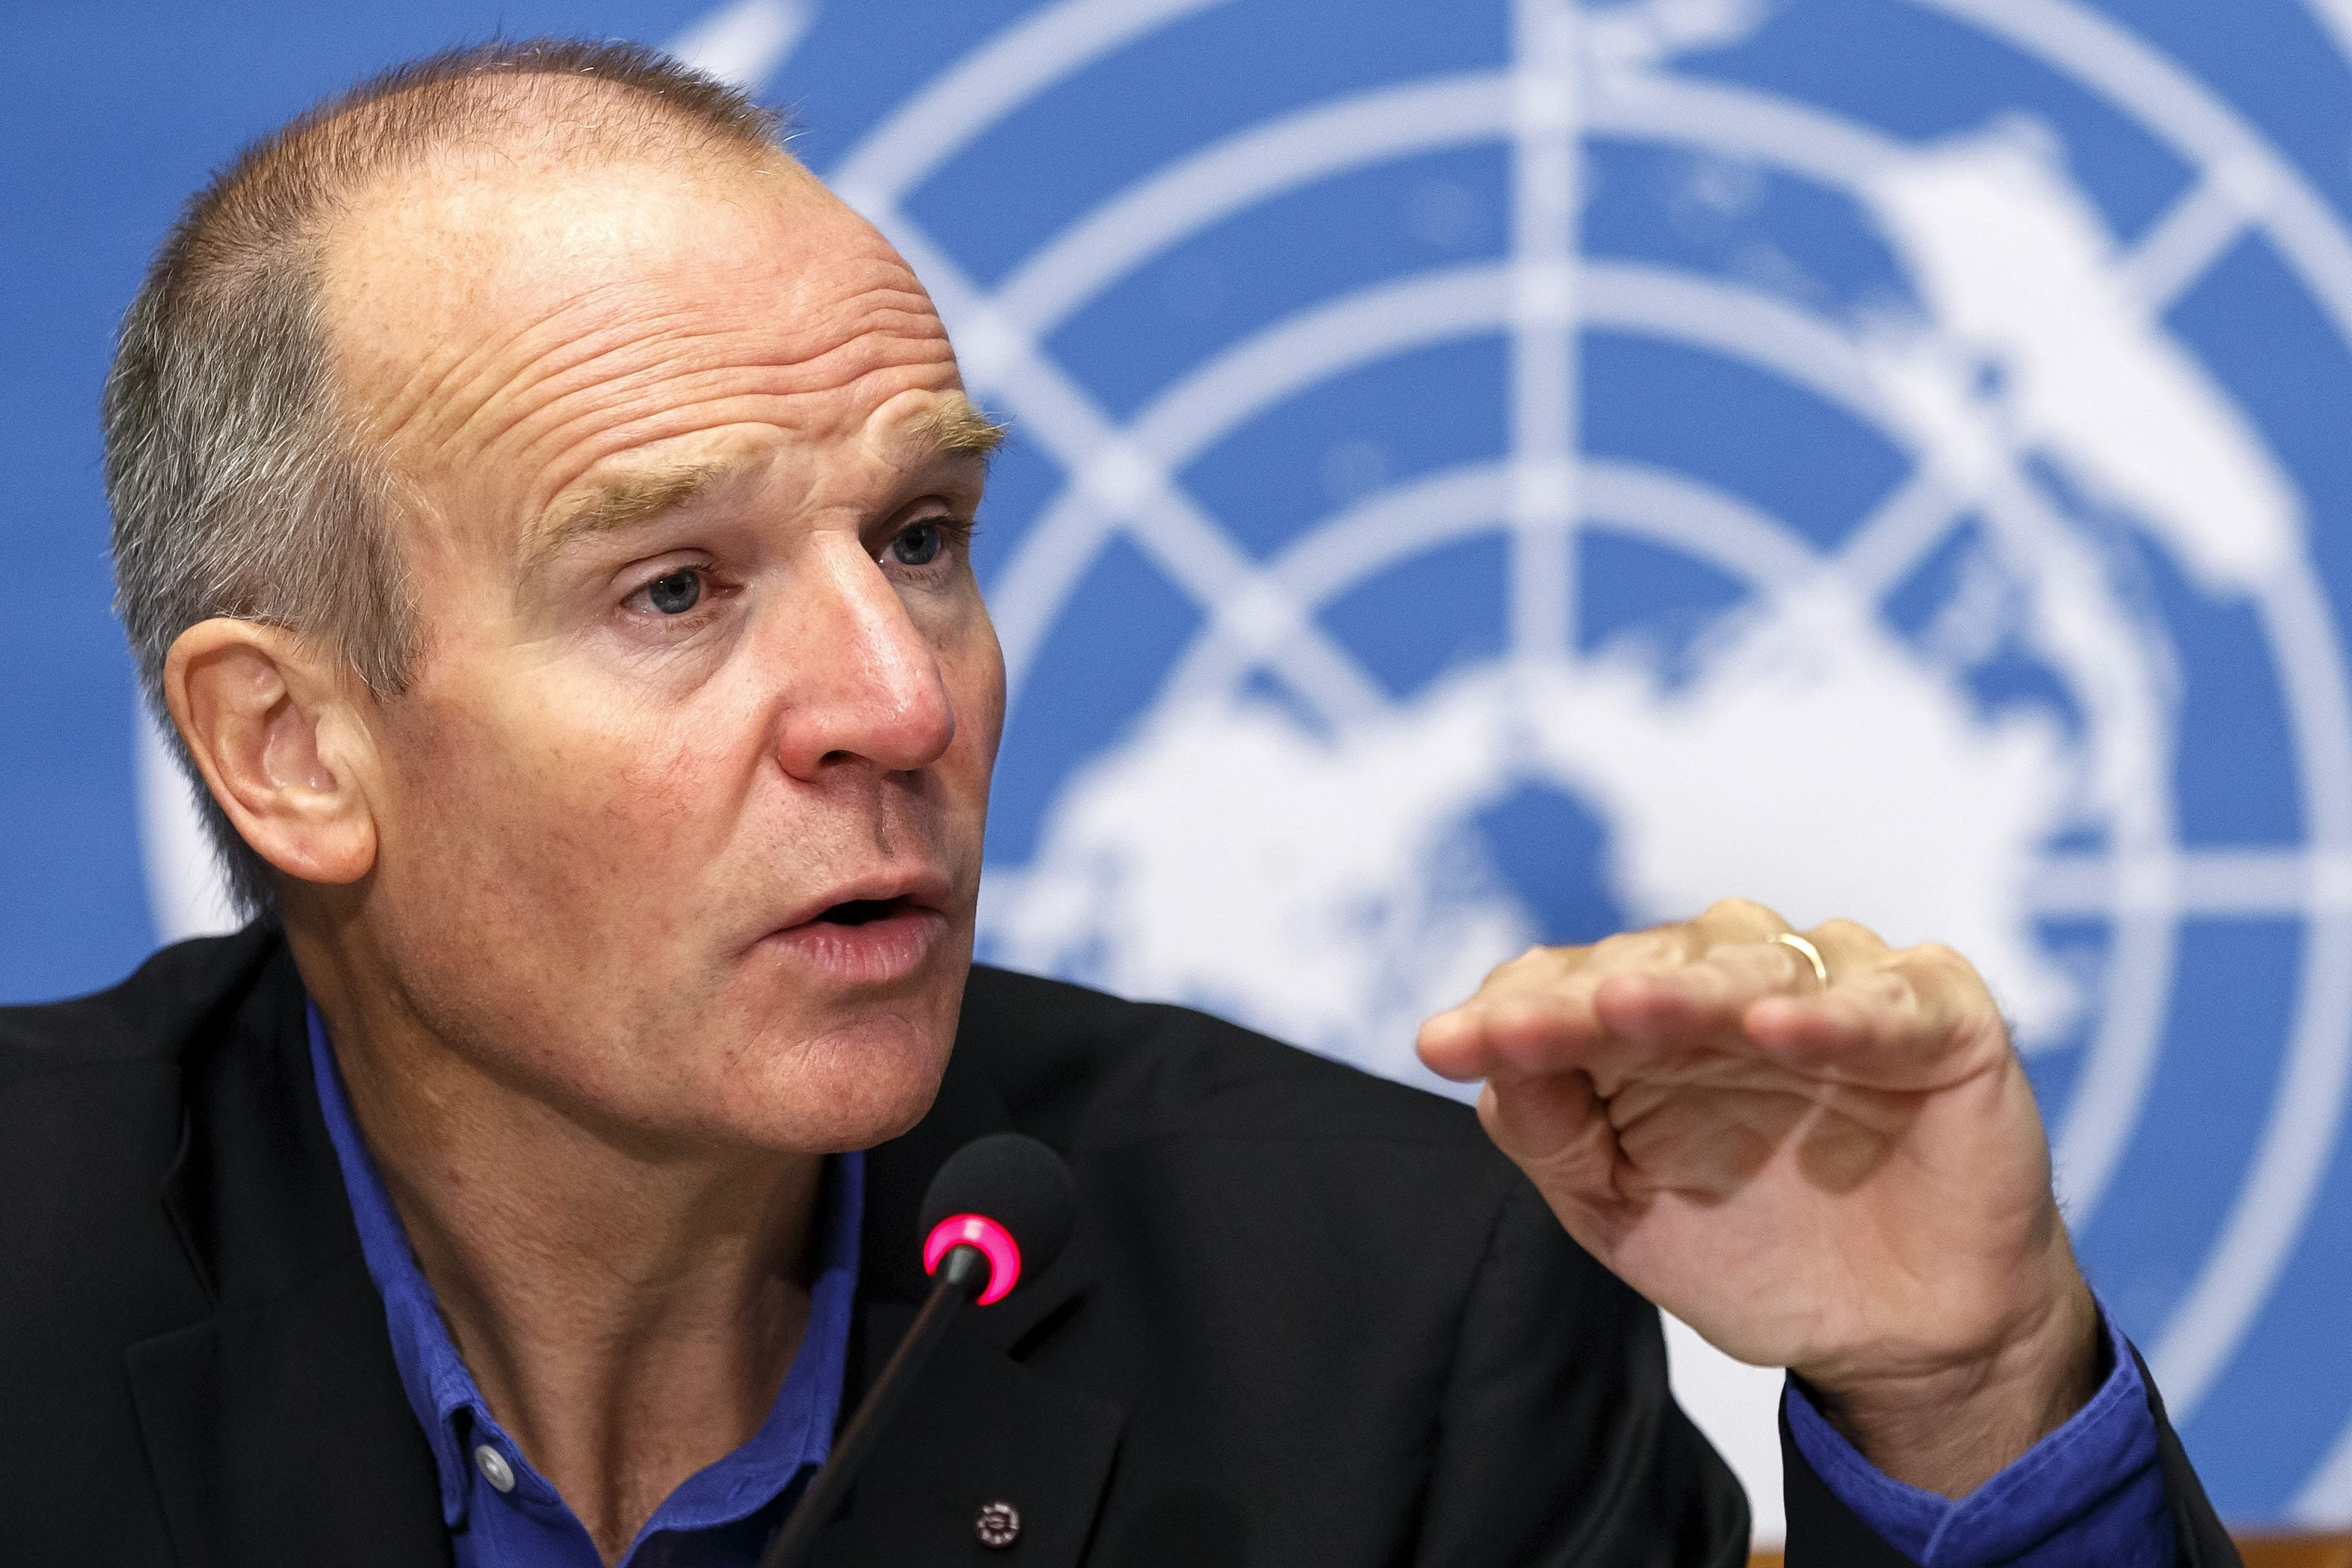 Christopher Dye, Director of Strategy of the World Health Organization speaks to the media about Ebola Virus Disease in West Africa, during a press conference, at the European headquarters of the United Nations in Geneva on Sept. 22, 2-14.